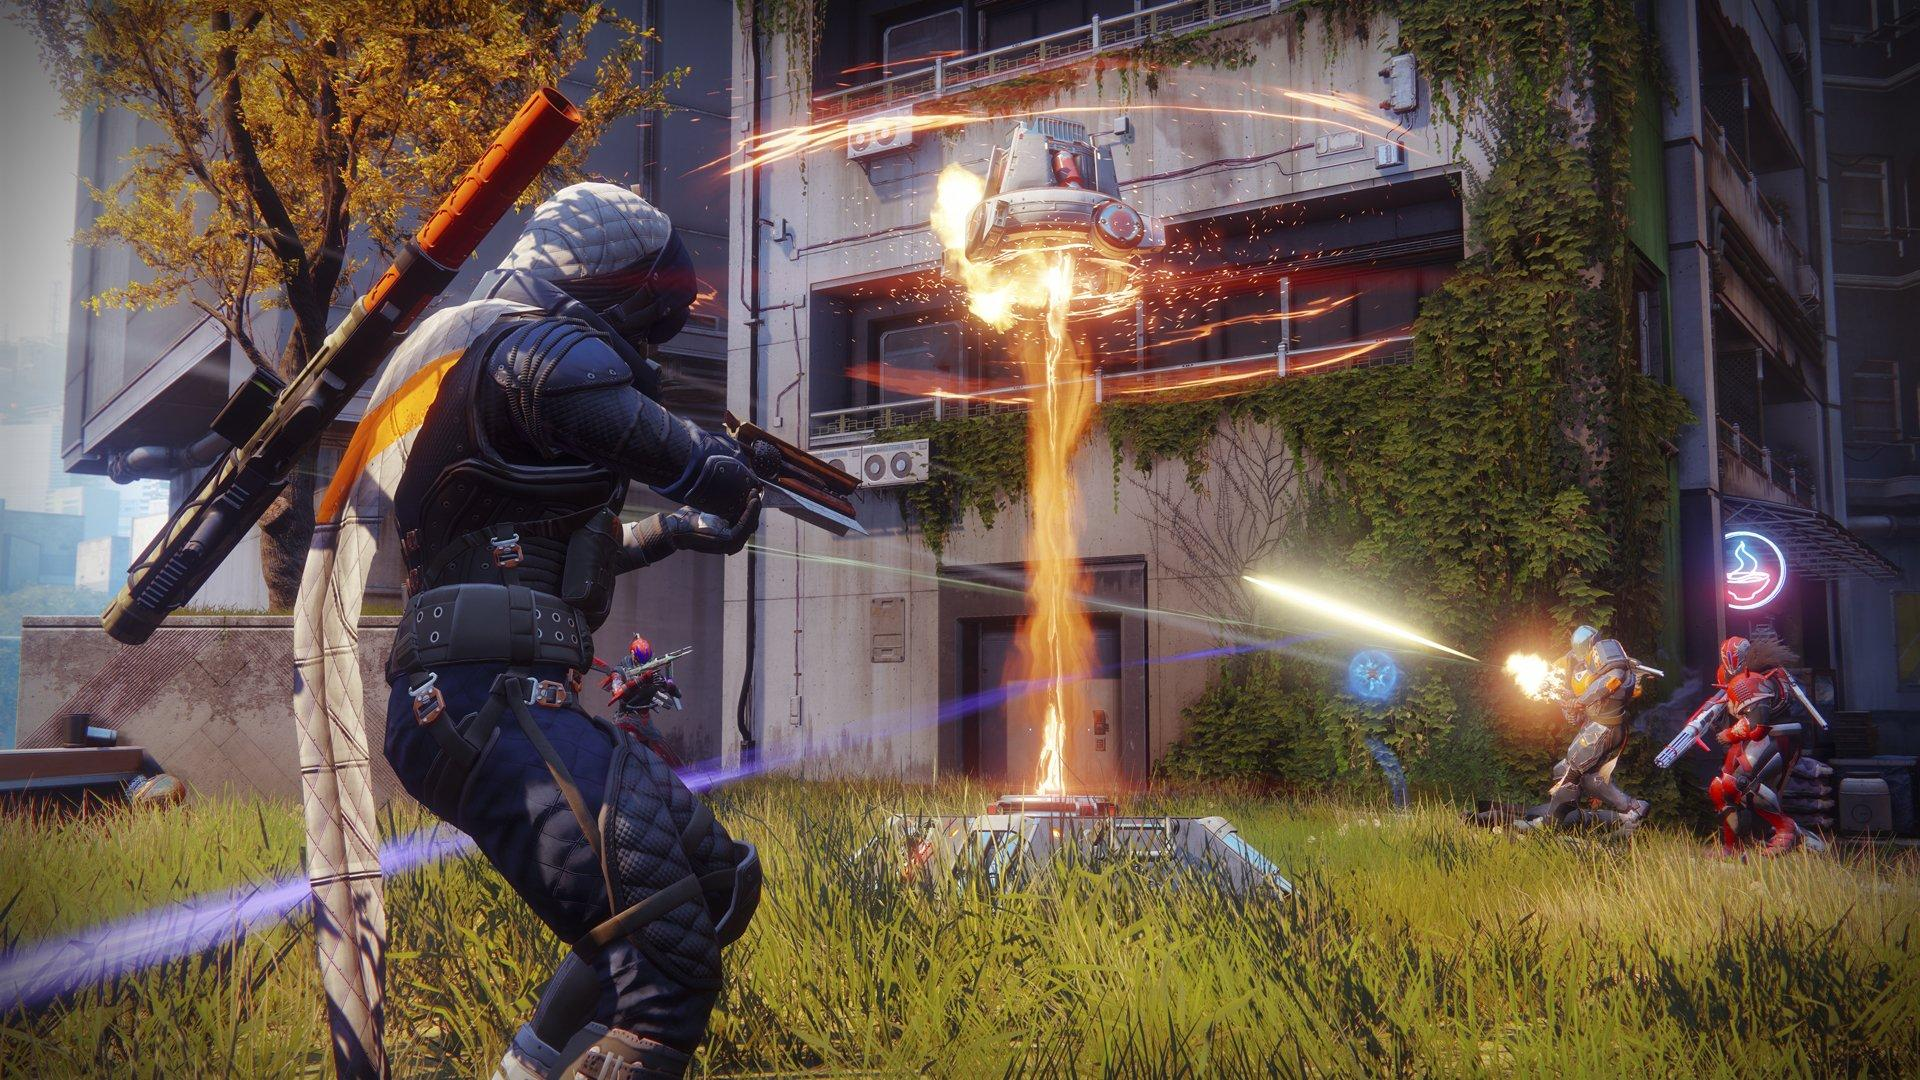 Destiny 2 On PC Will Launch After Console Versions